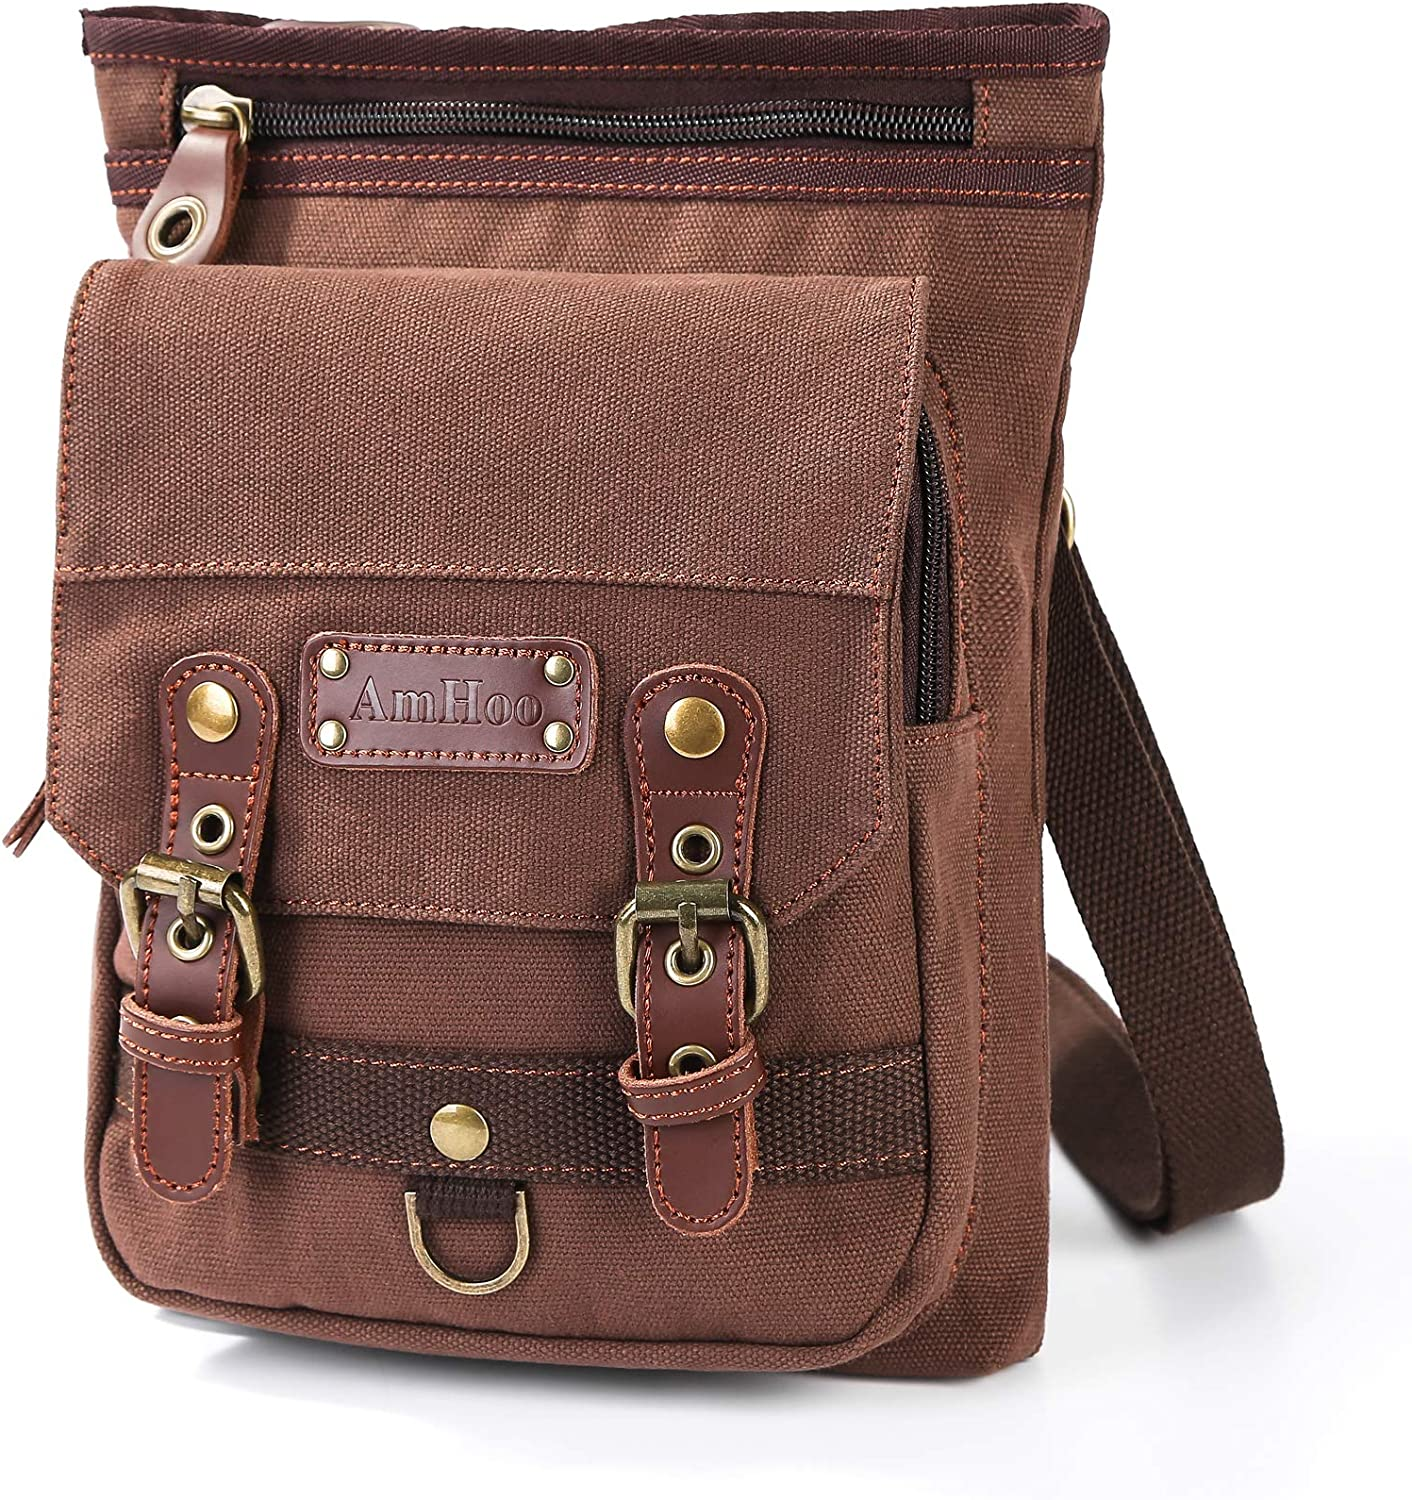 Plambag Canvas Messenger Bag Small Travel School Crossbody Bag Coffee